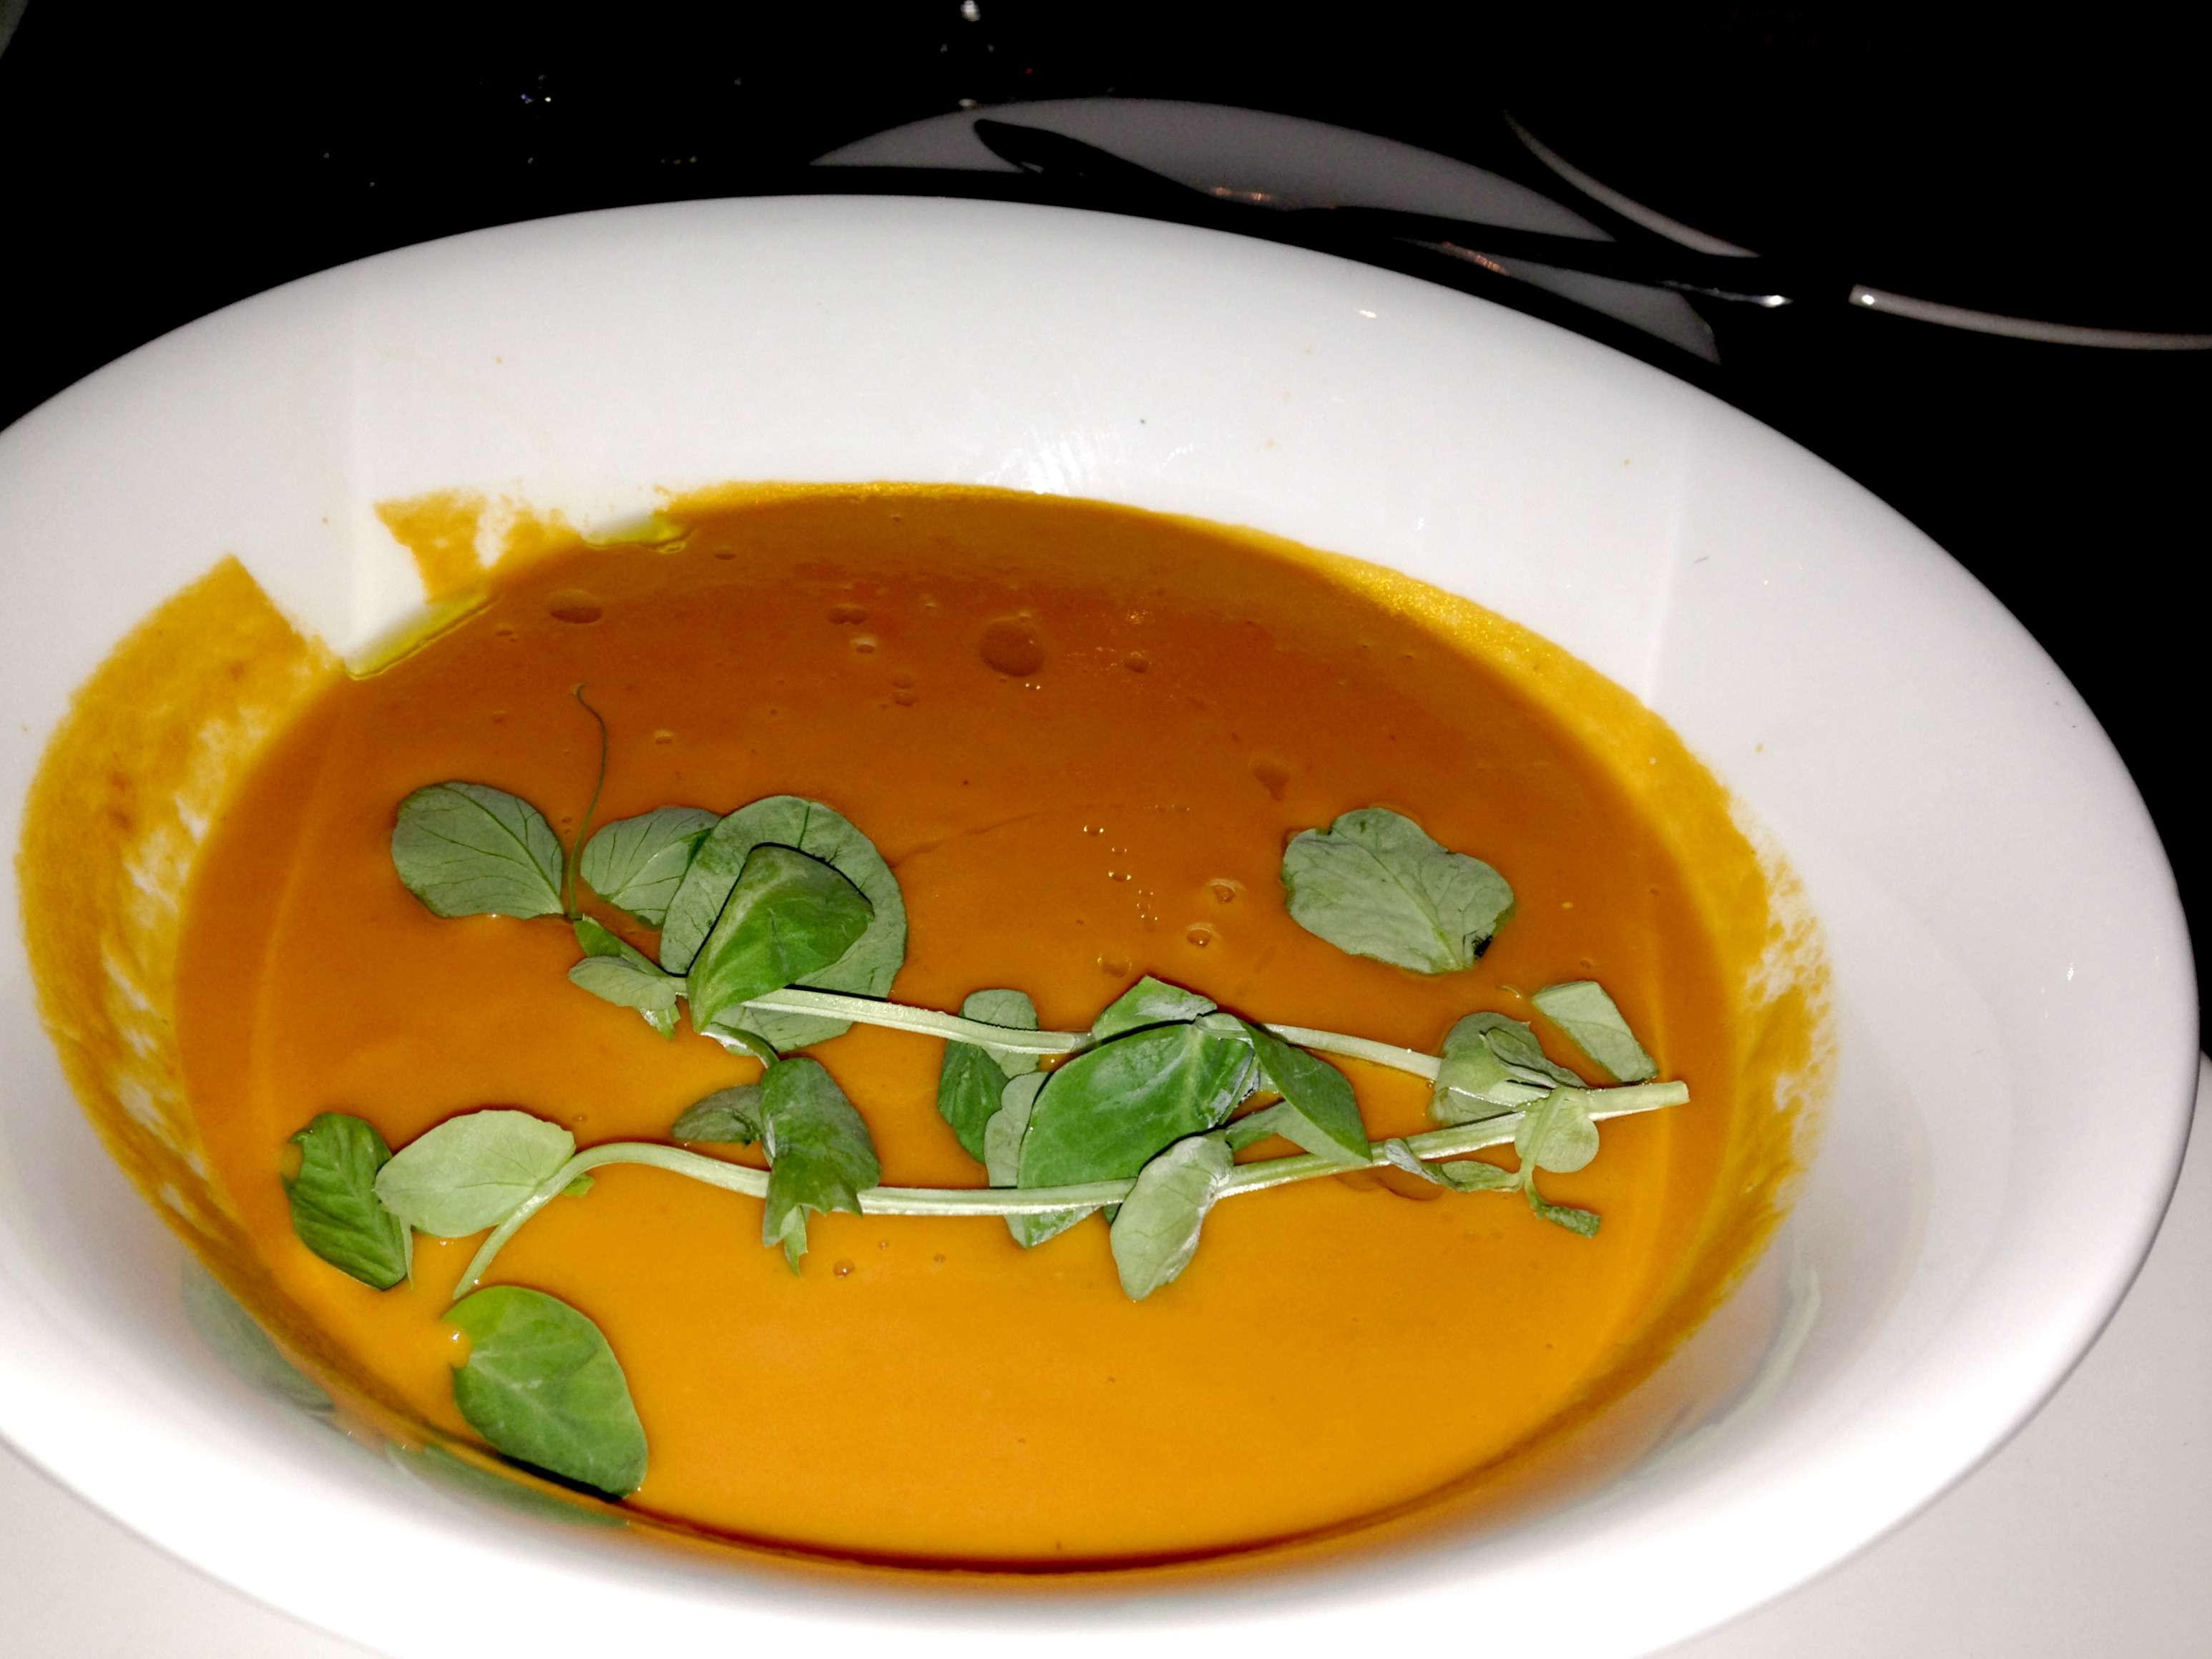 Dinner at brassaii tomato soup